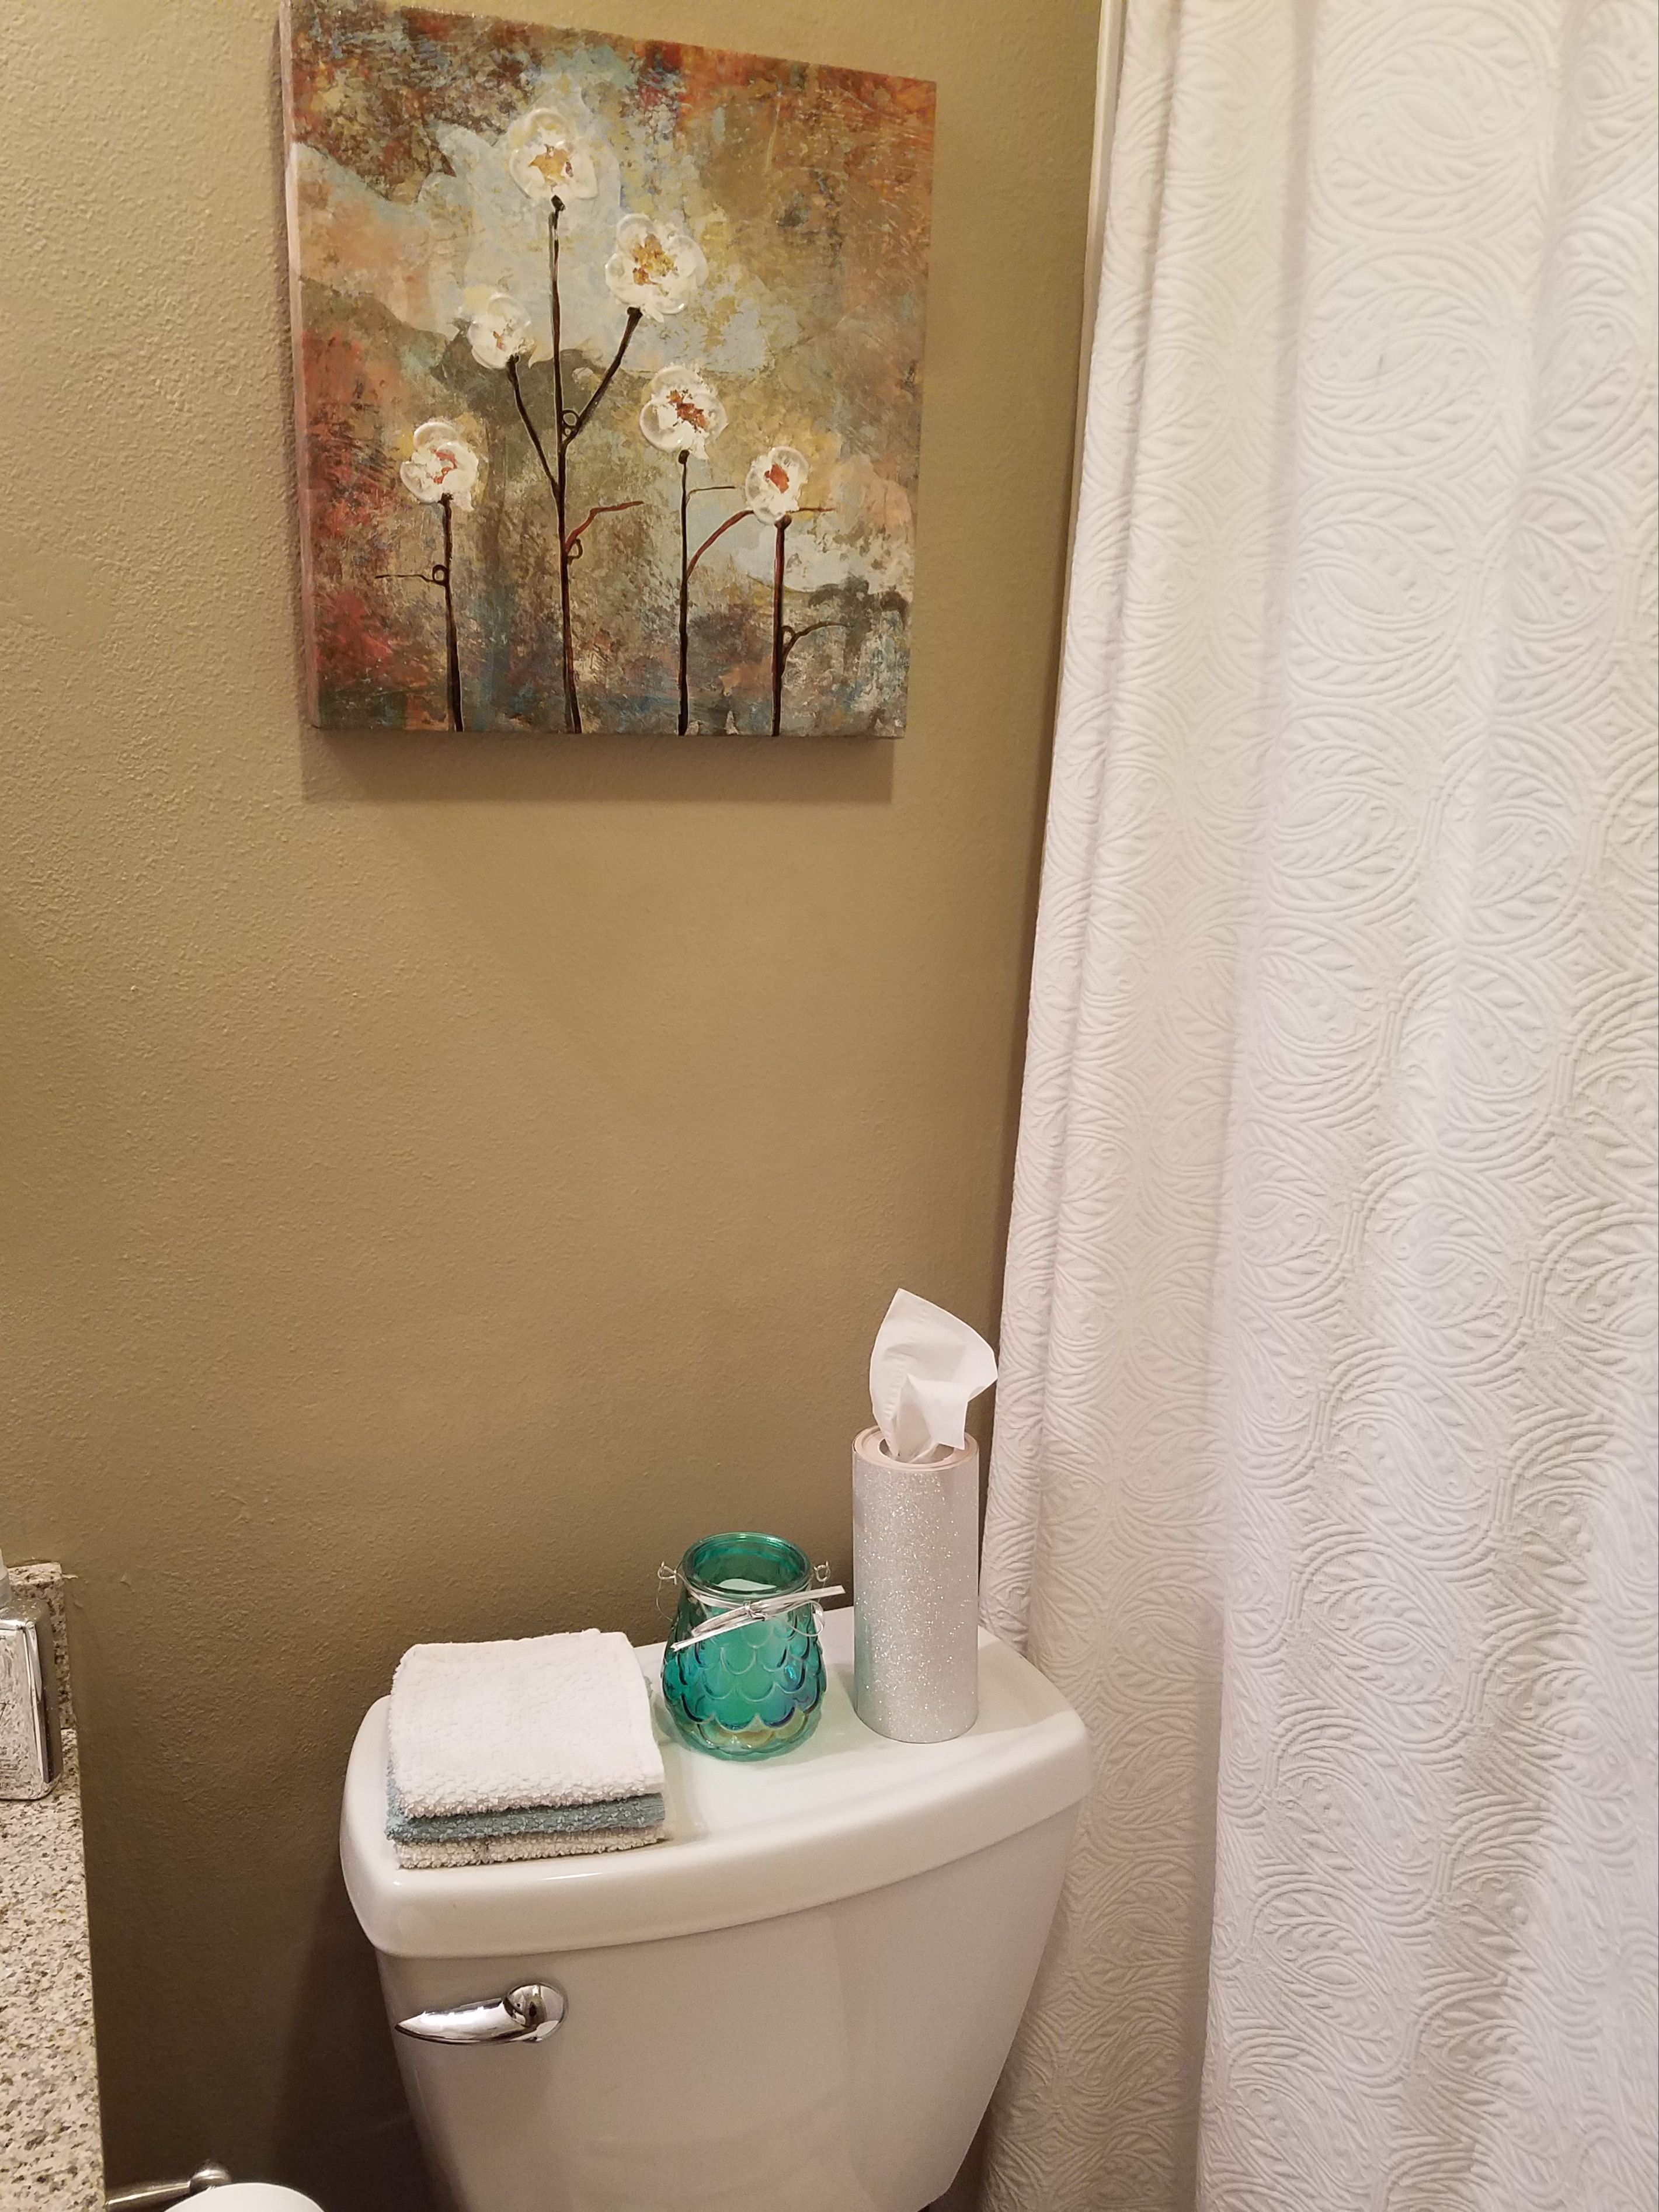 TJ Maxx Artwork Contact Paper Cylindrical Tissue Cover Battery Candle Towels All White Shower Curtain